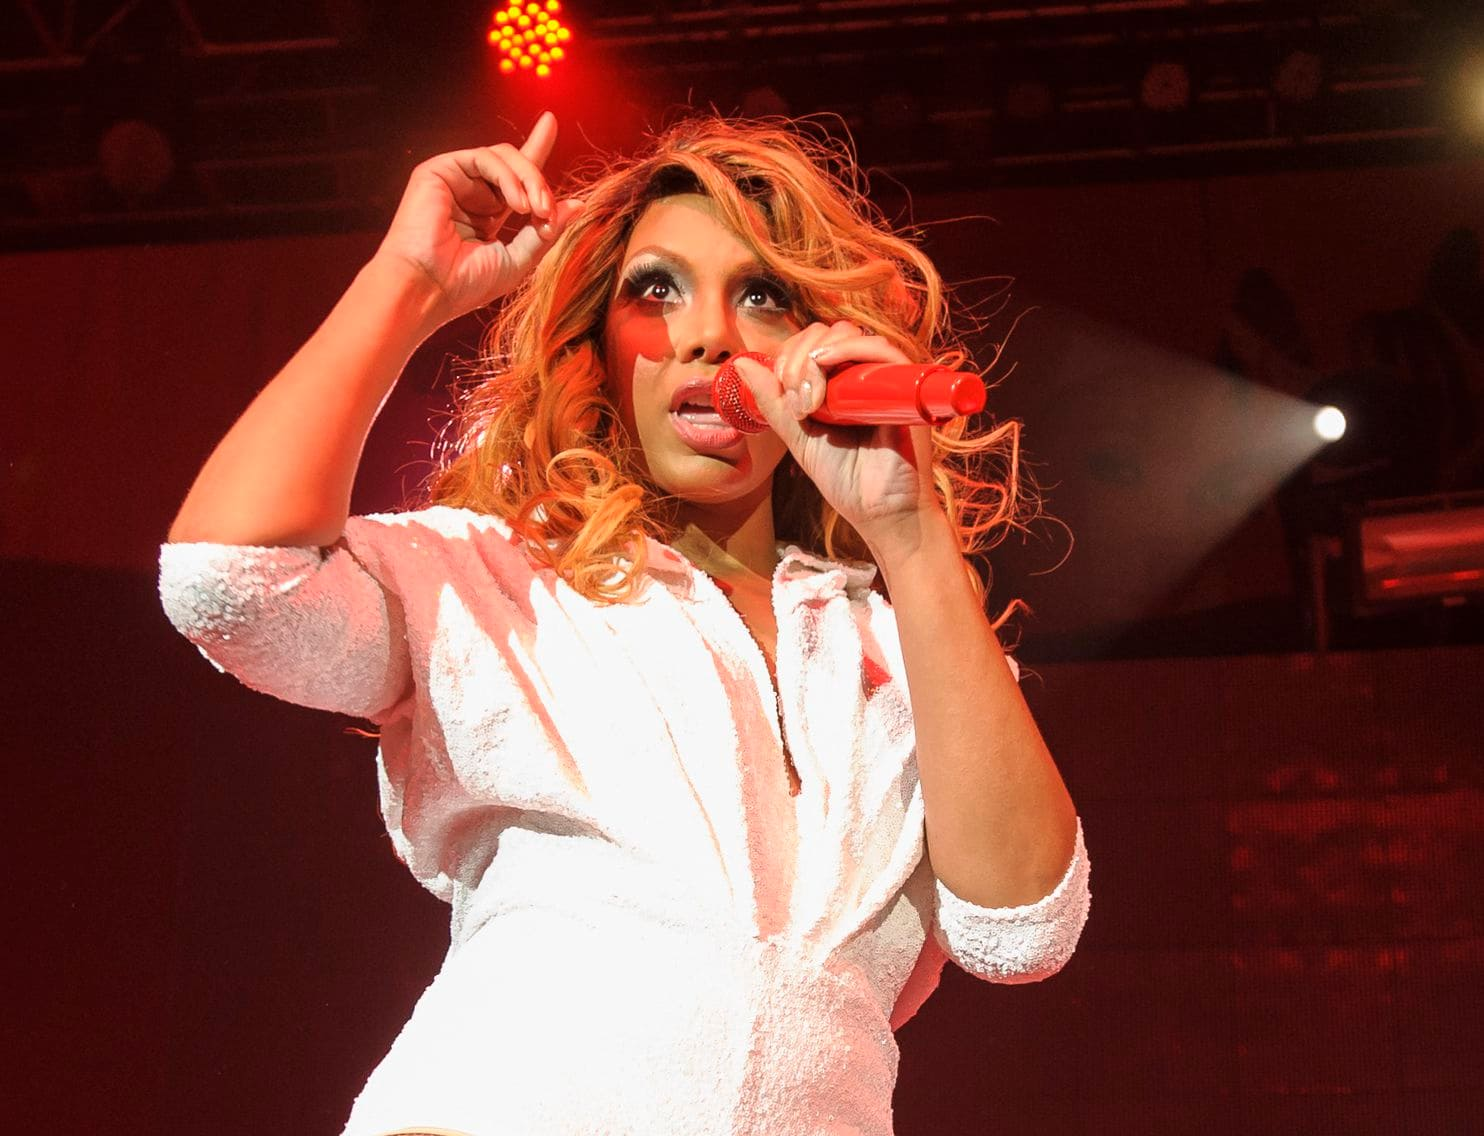 Tamar Braxton Worries Fans With Her Latest Video Featuring David Adefeso